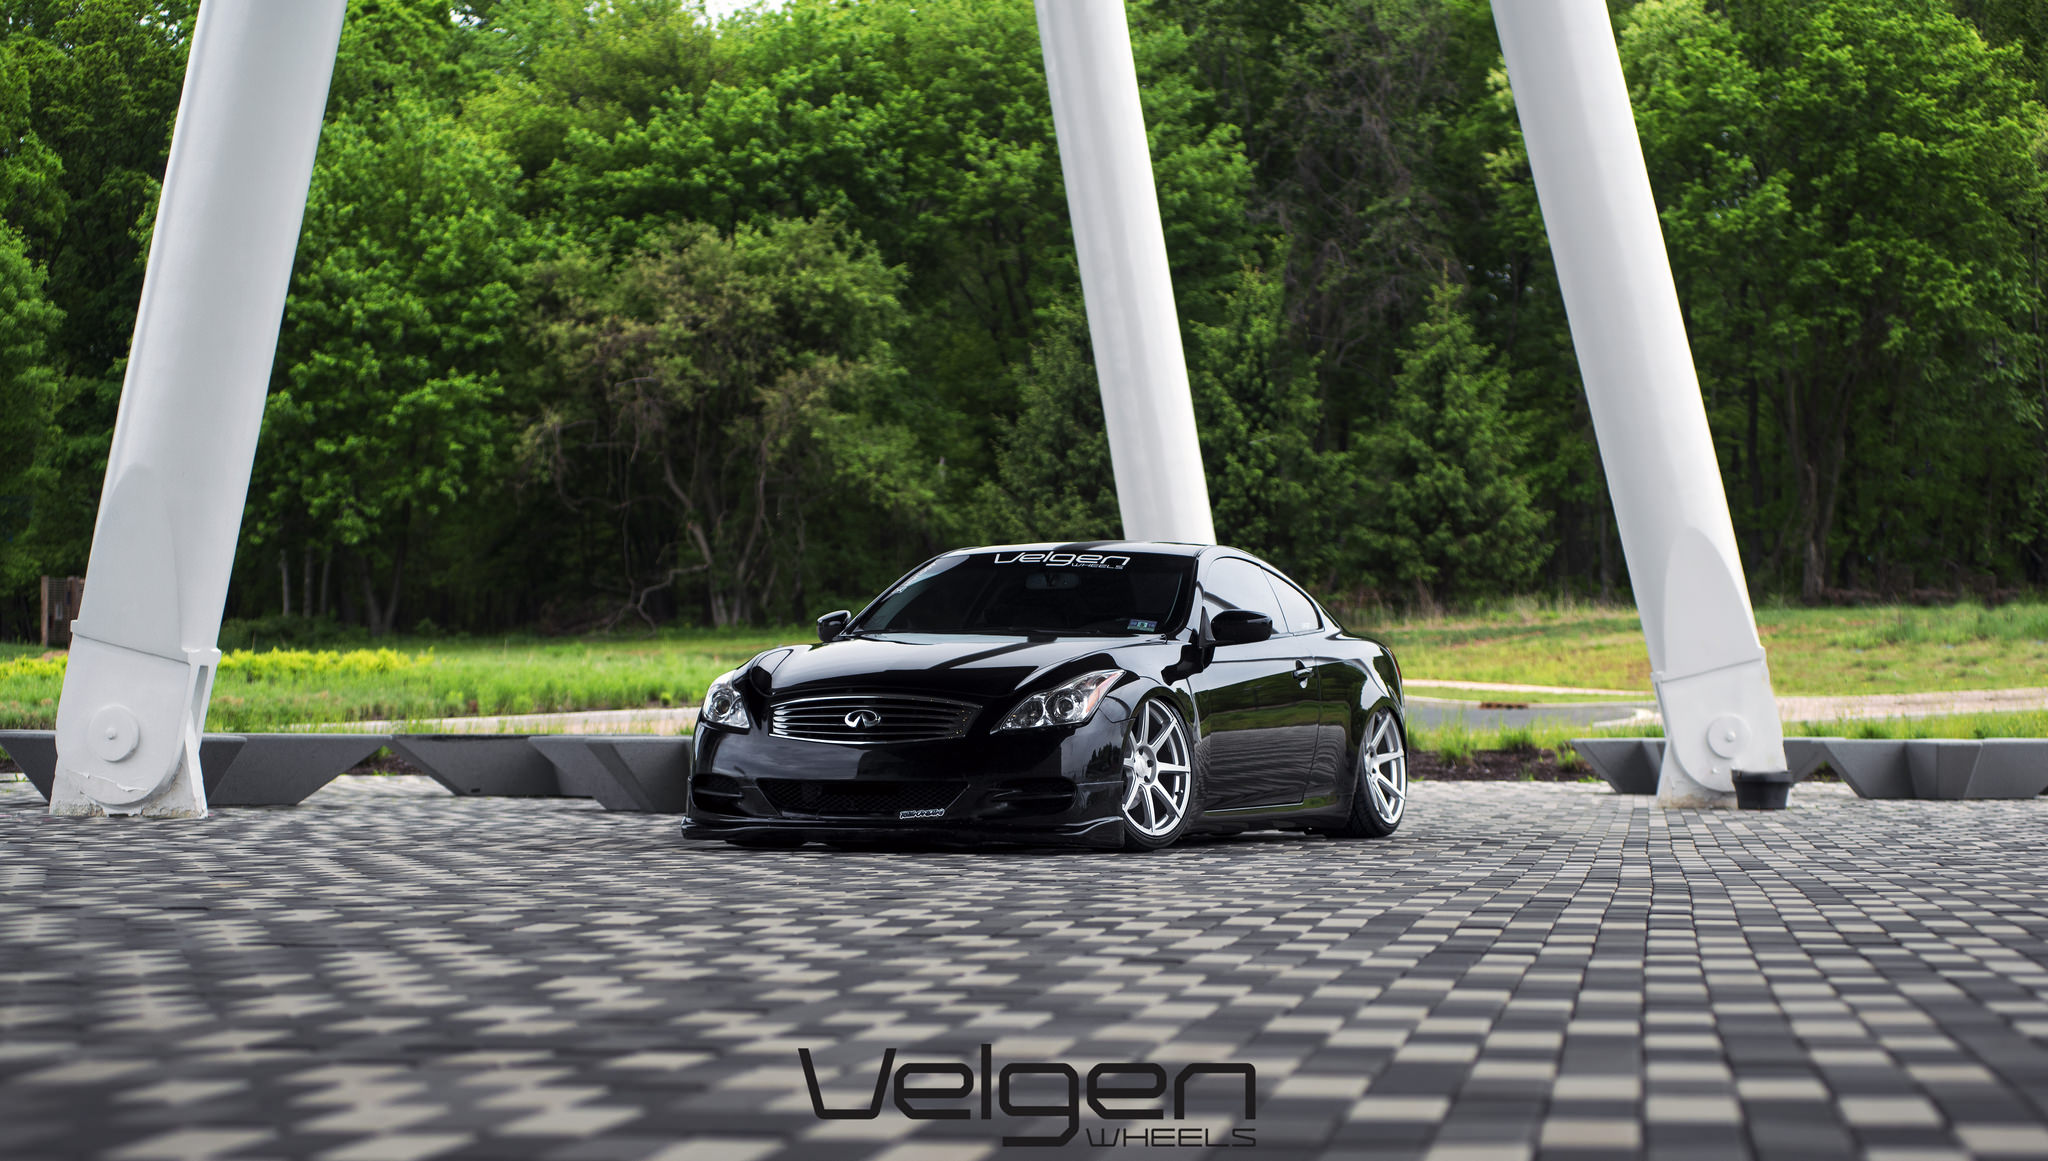 G37 Archives - MPPSOCIETY